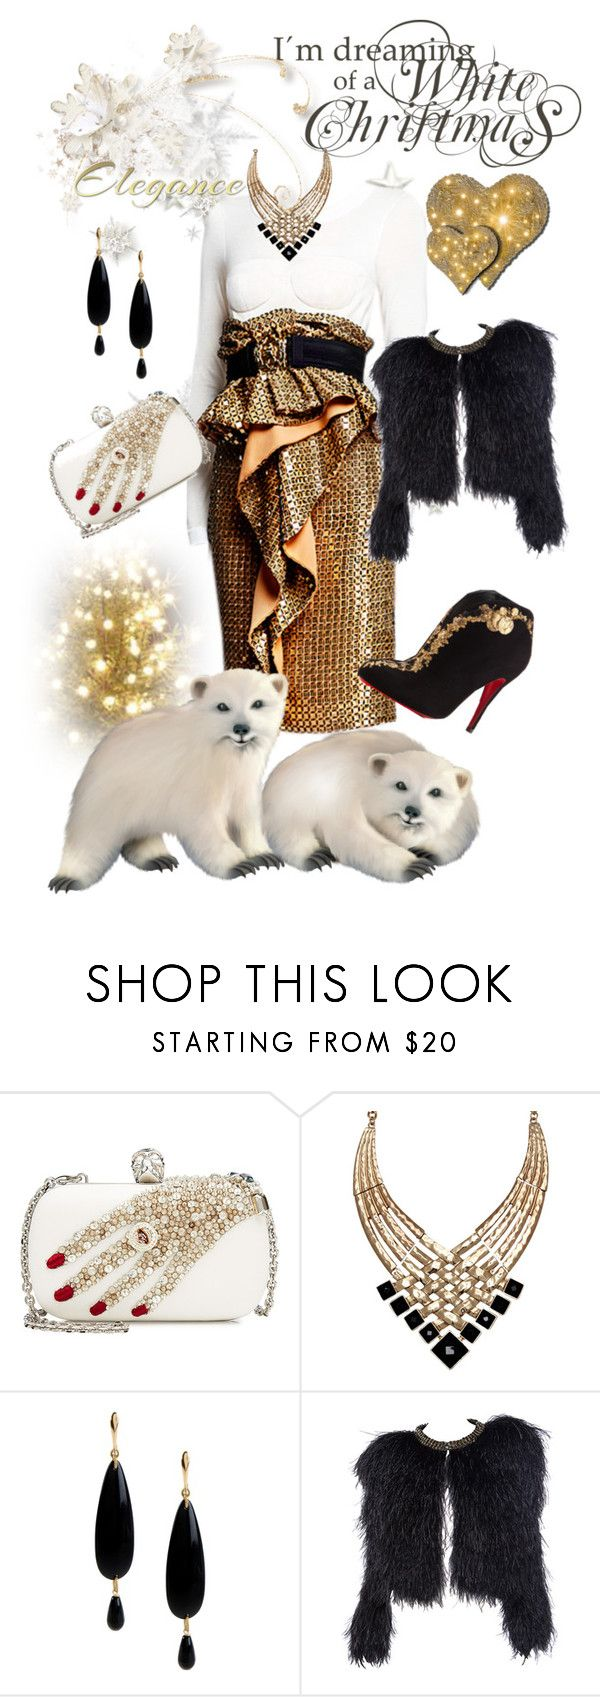 """My Sparkle"" by belinda54-1 ❤ liked on Polyvore featuring Alexander McQueen, ALDO, NUR and Christian Louboutin"